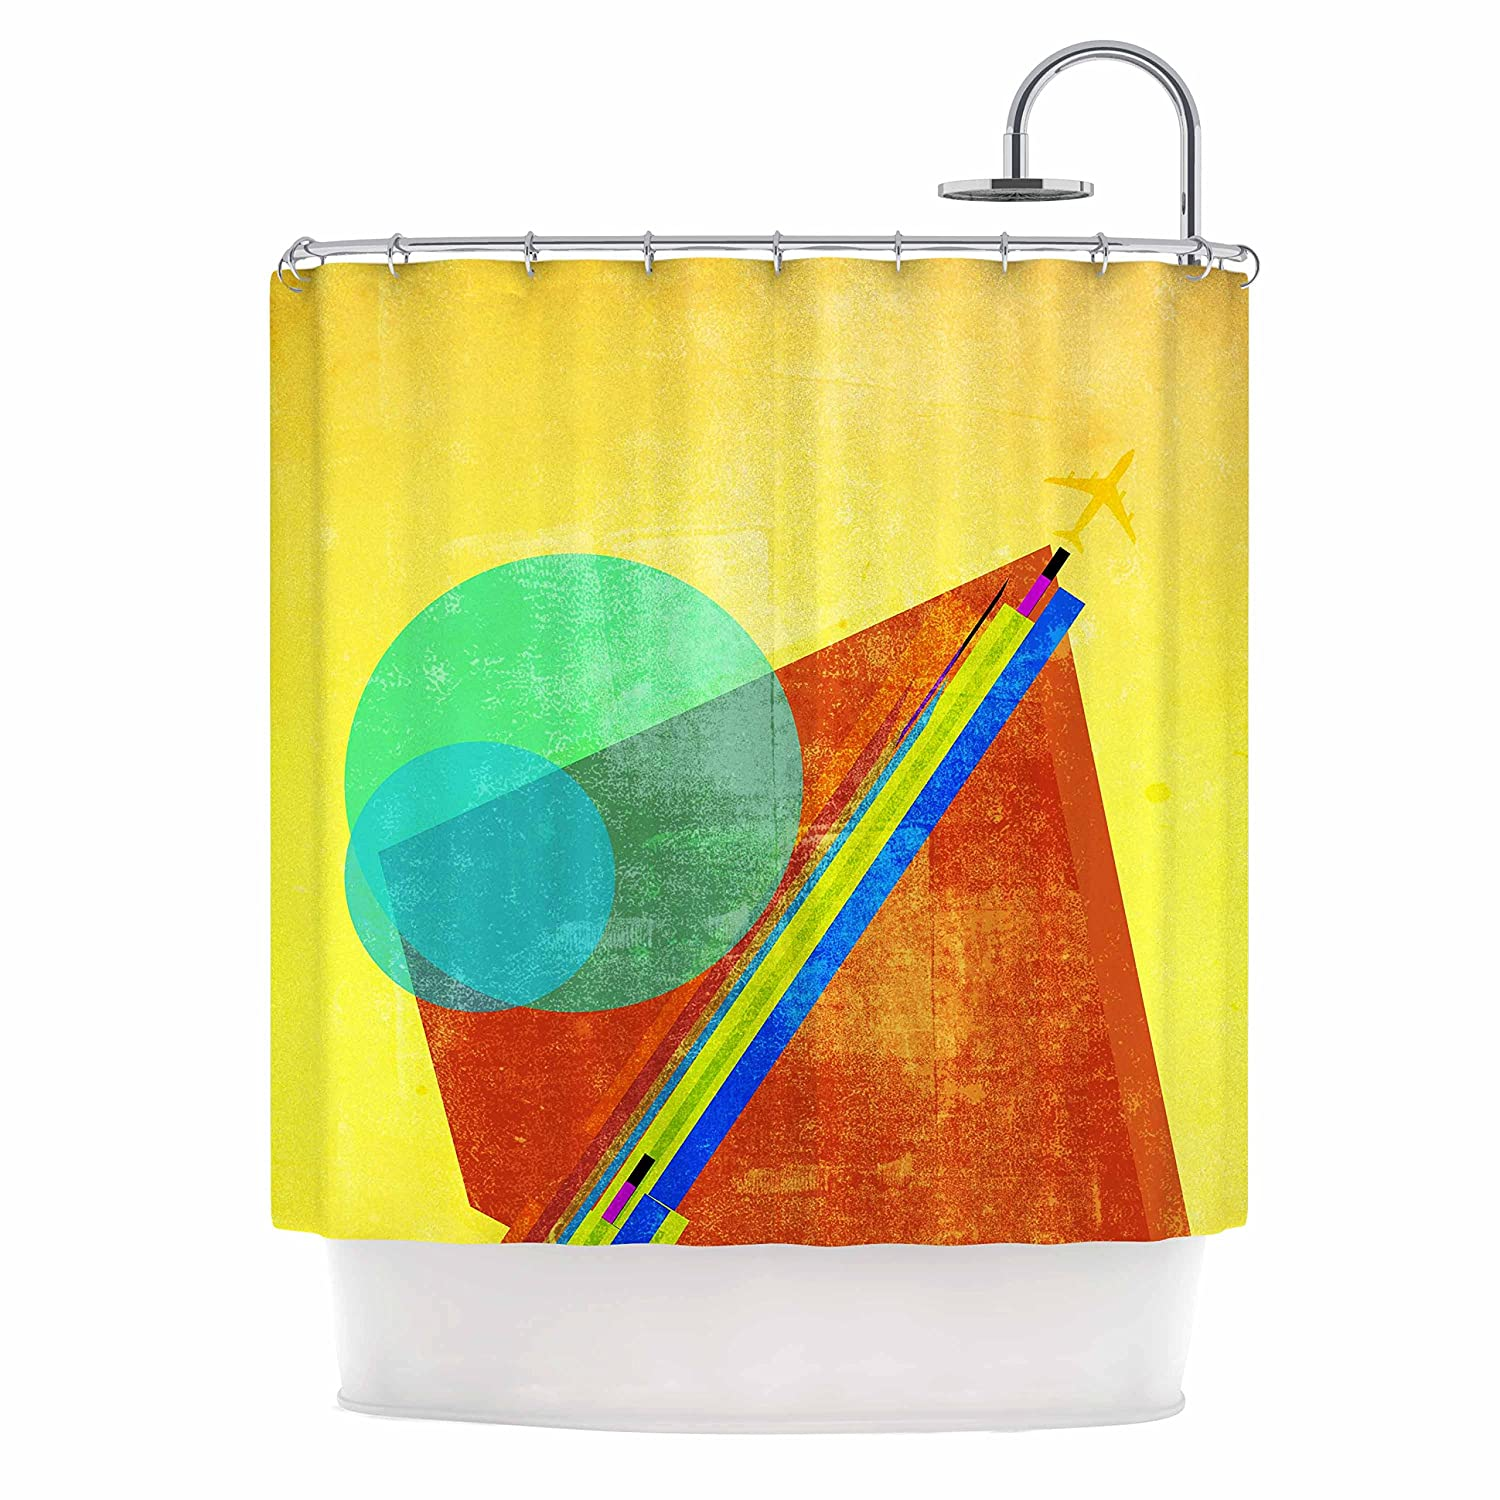 Kess InHouse Frederic Levy-Hadida Landing Blue Yellow Mixed Media Geometric 69 x 70 Shower Curtain